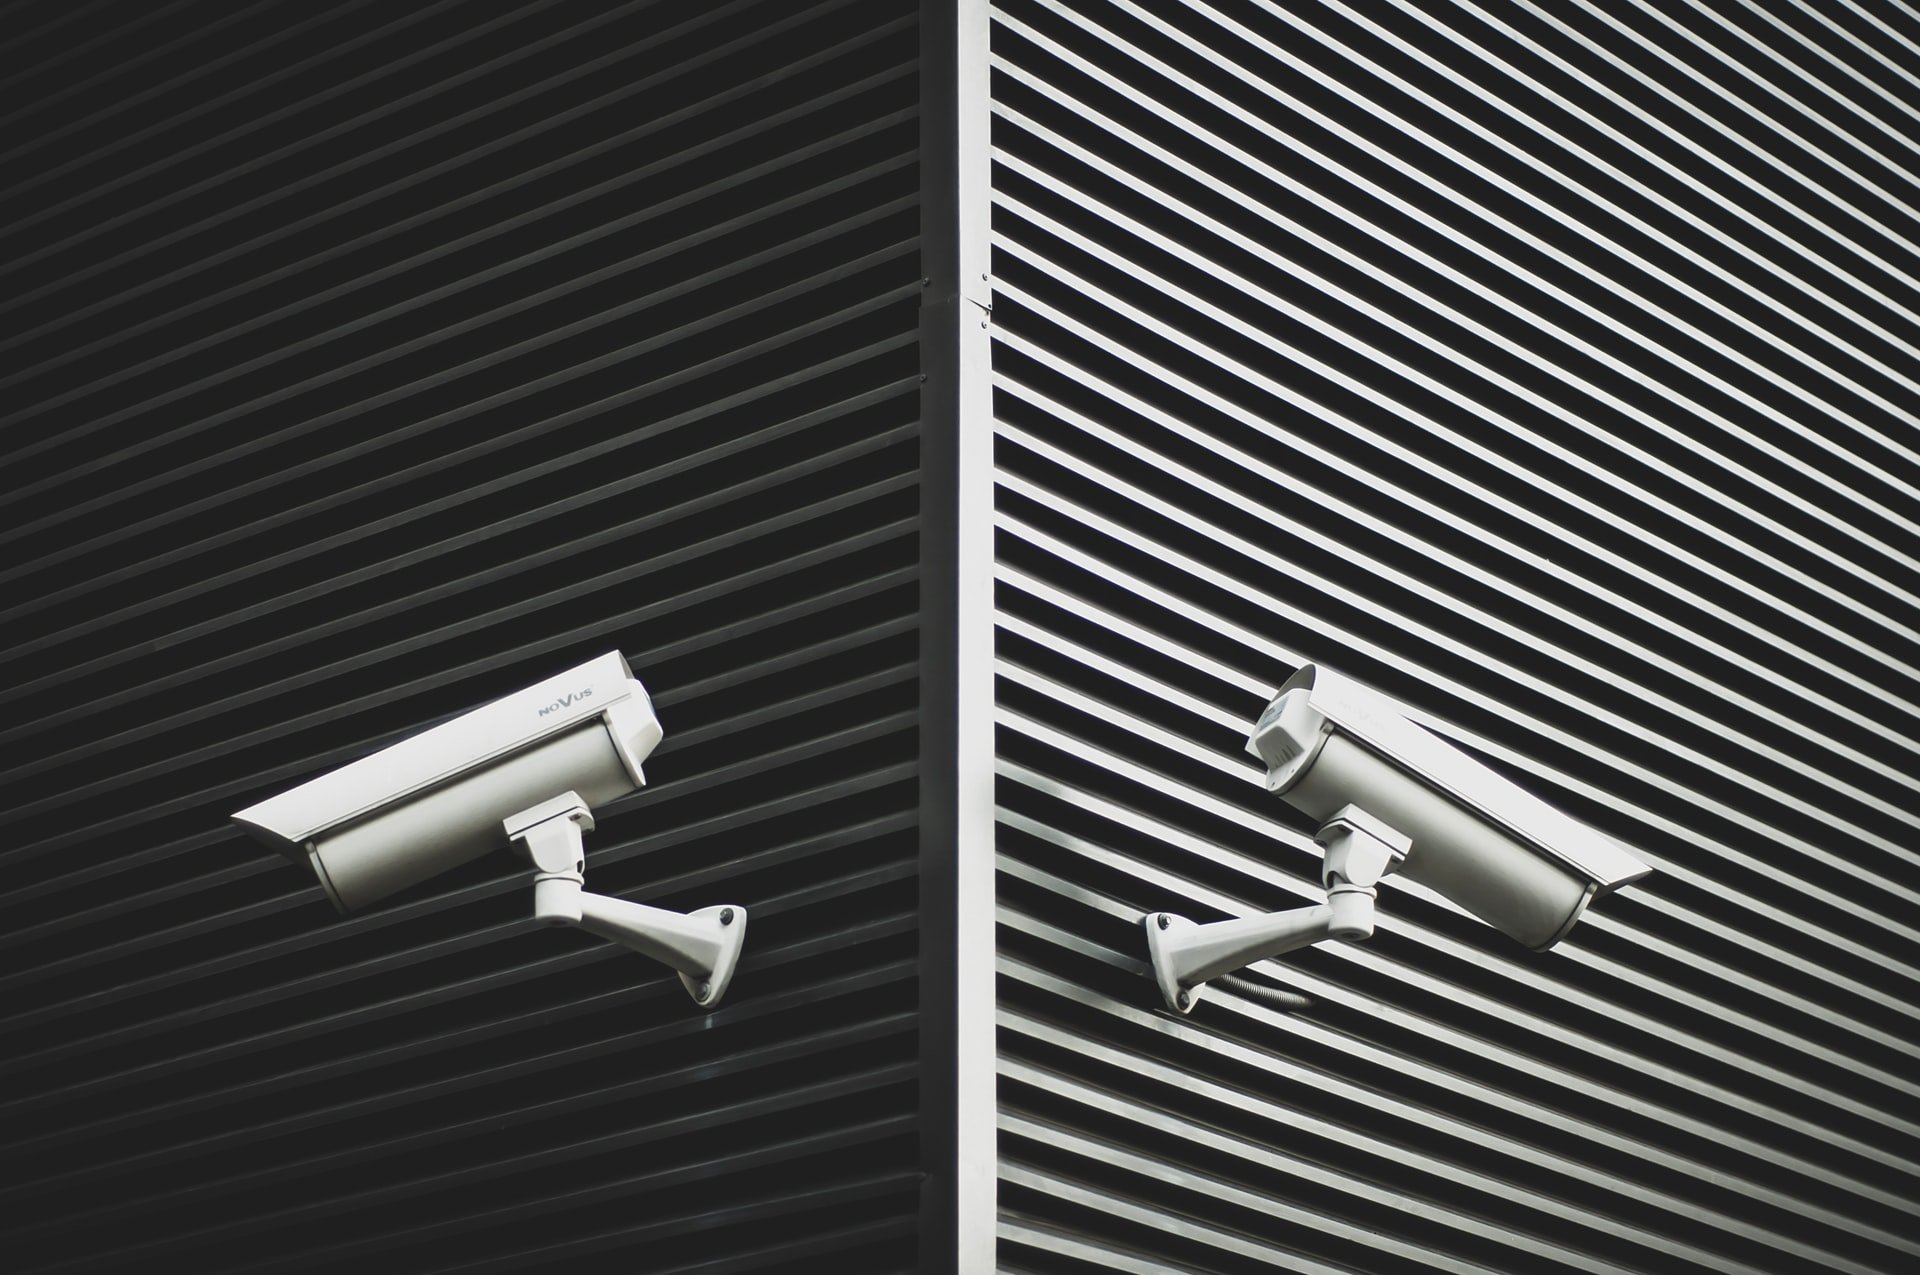 3 Proxy Search Engines for Superior Privacy